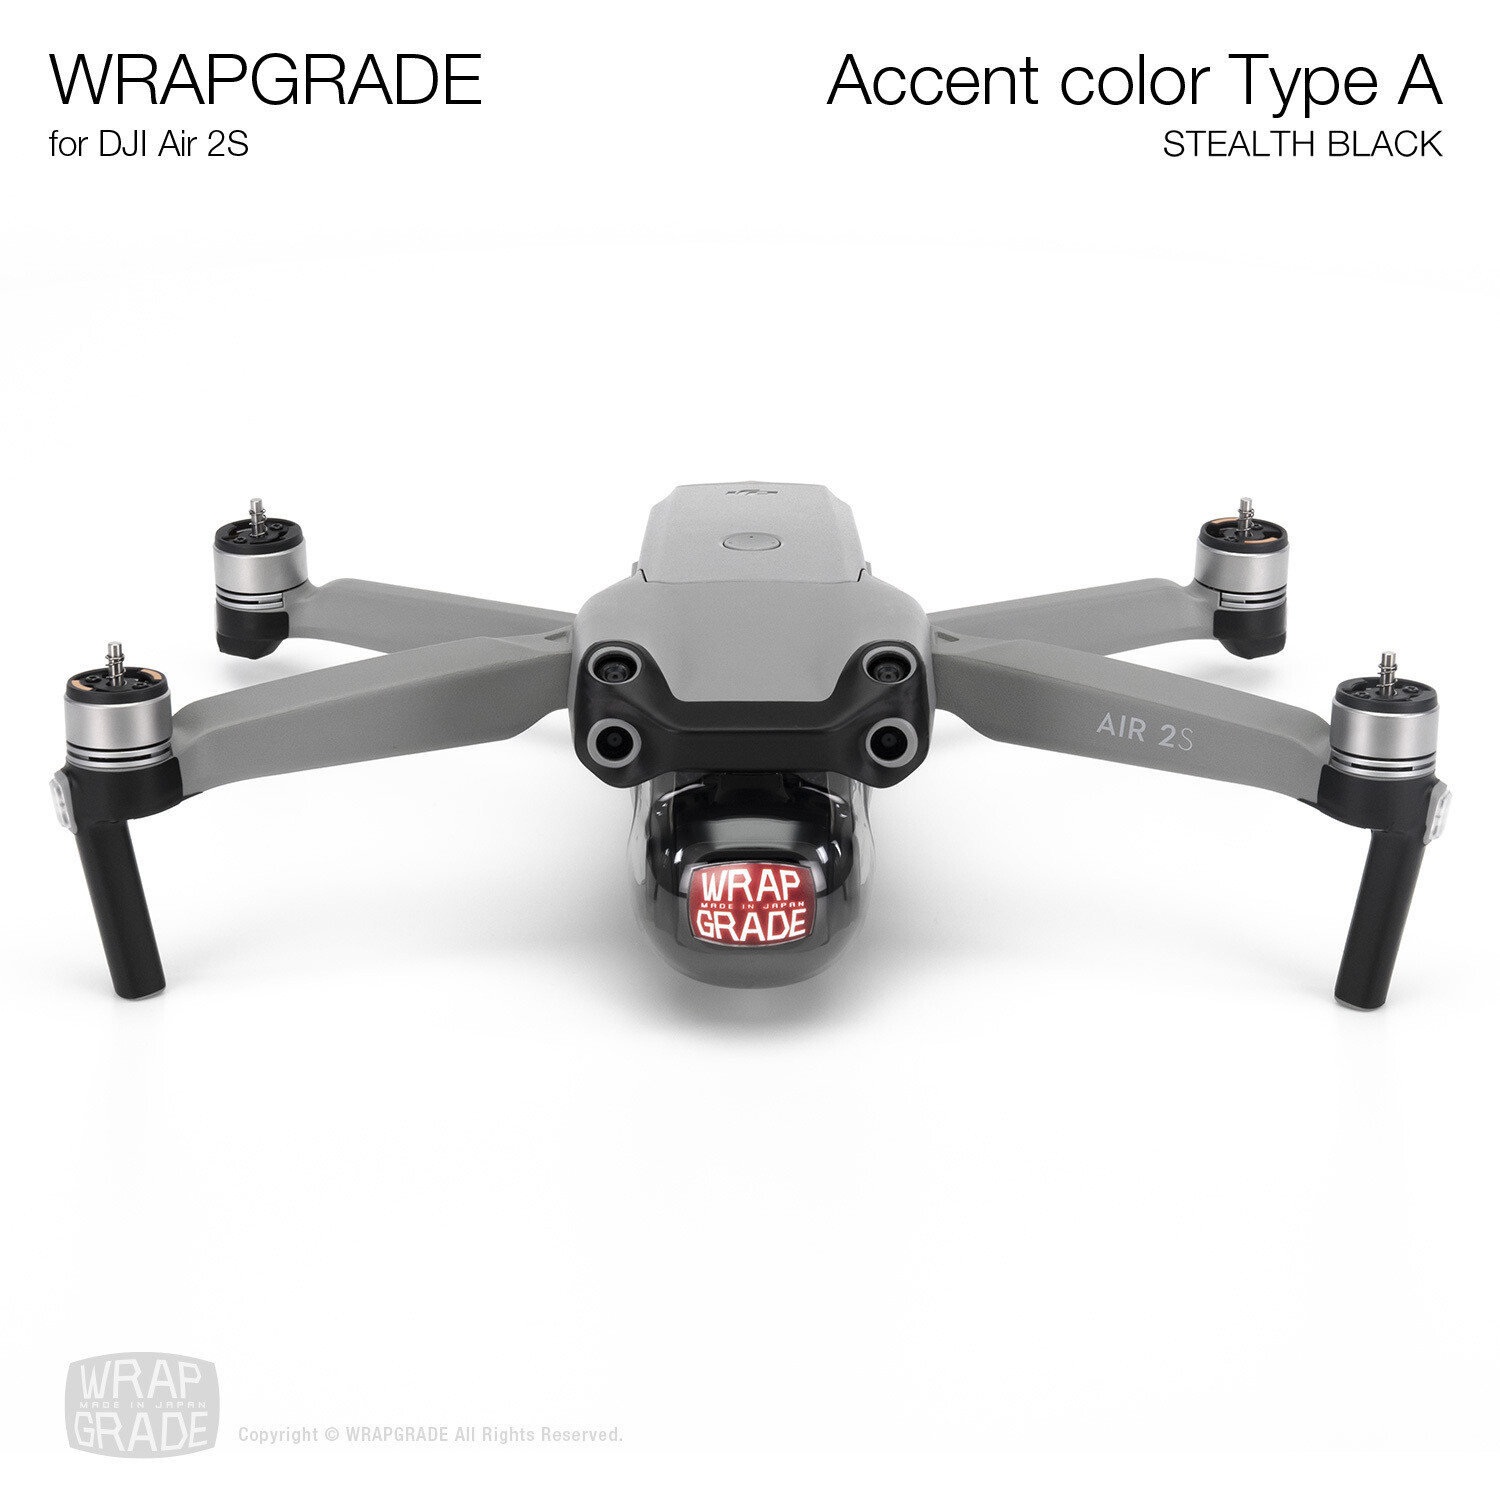 Wrapgrade Skin for DJI Air 2S | Accent Color A (STEALTH BLACK)